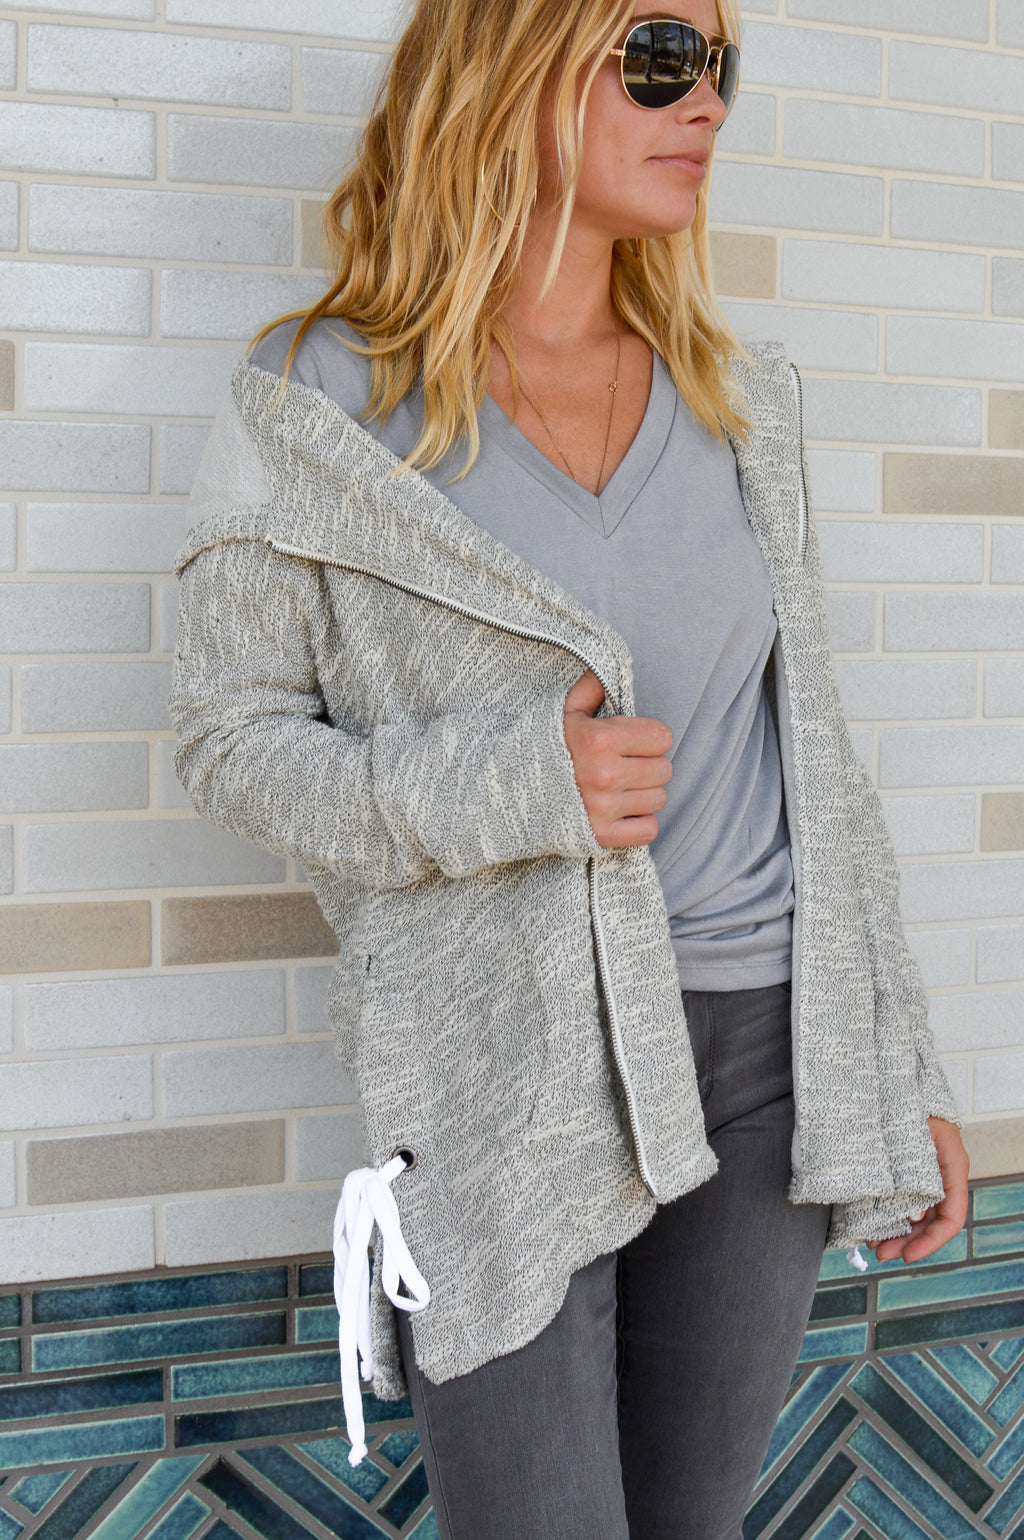 JACK BY BB DAKOTA THE AVA HEATHERED GRAY HOODIE